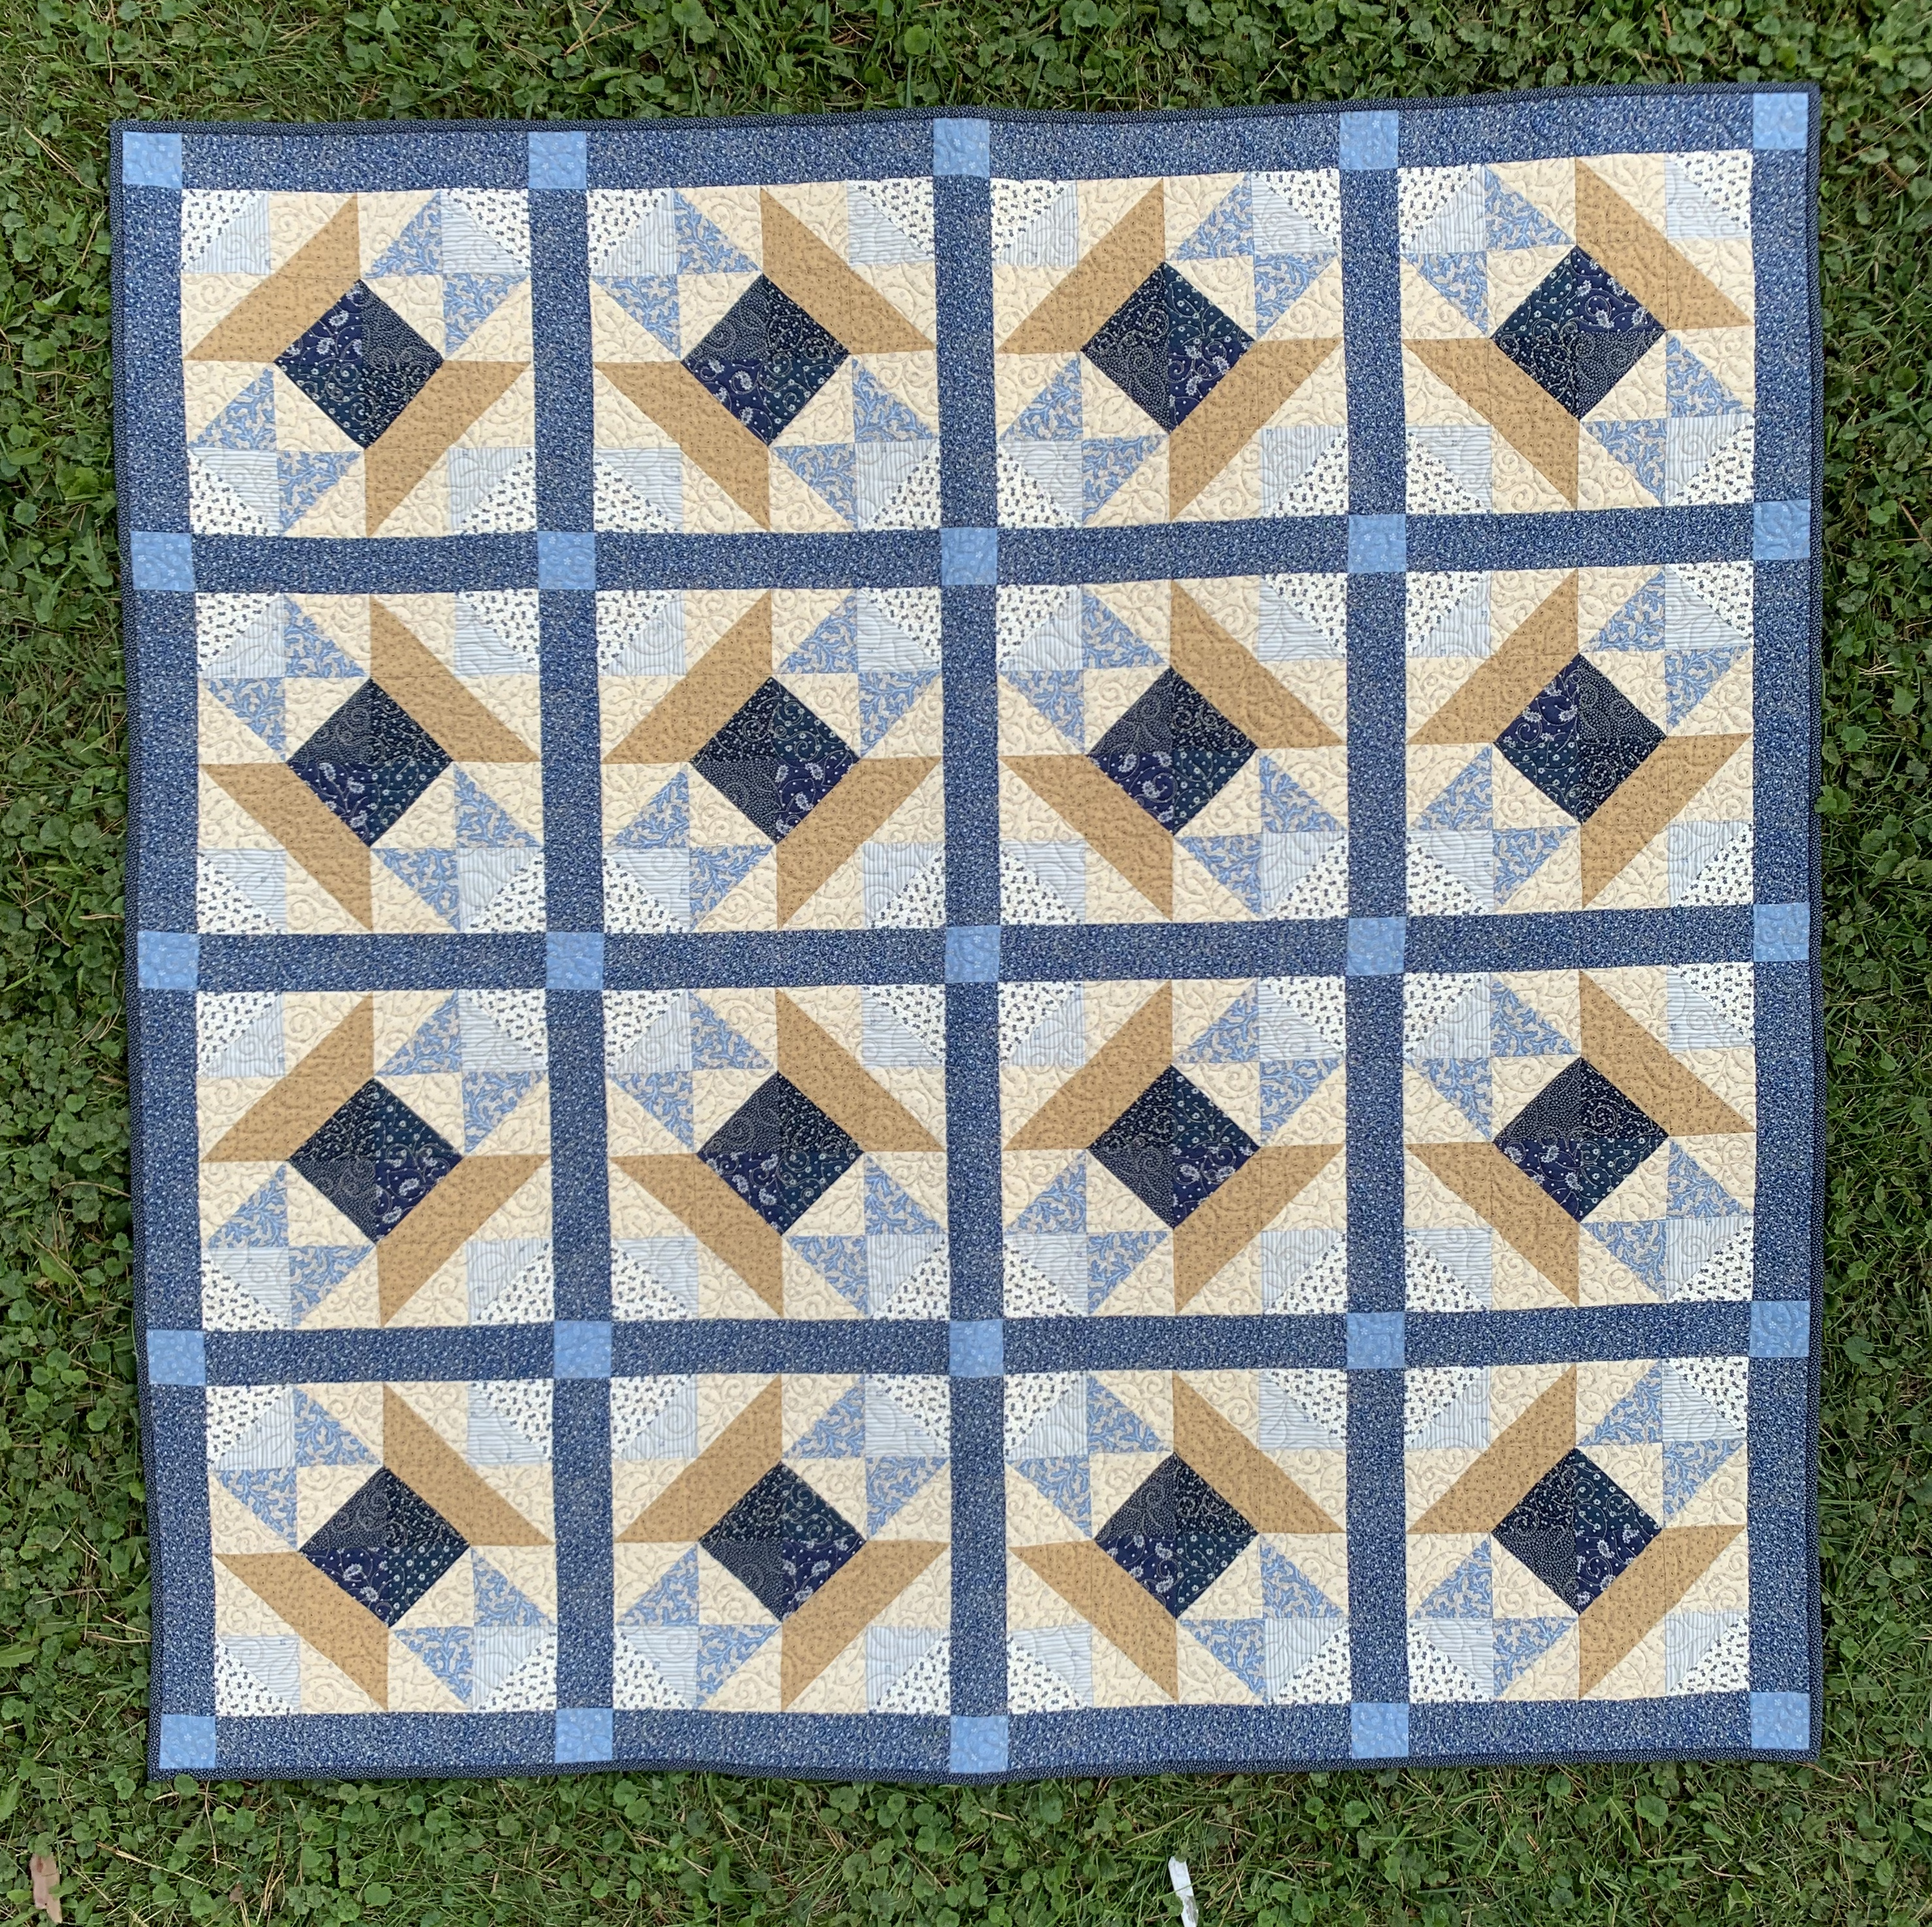 Nancy Spool's Quilt 57x57